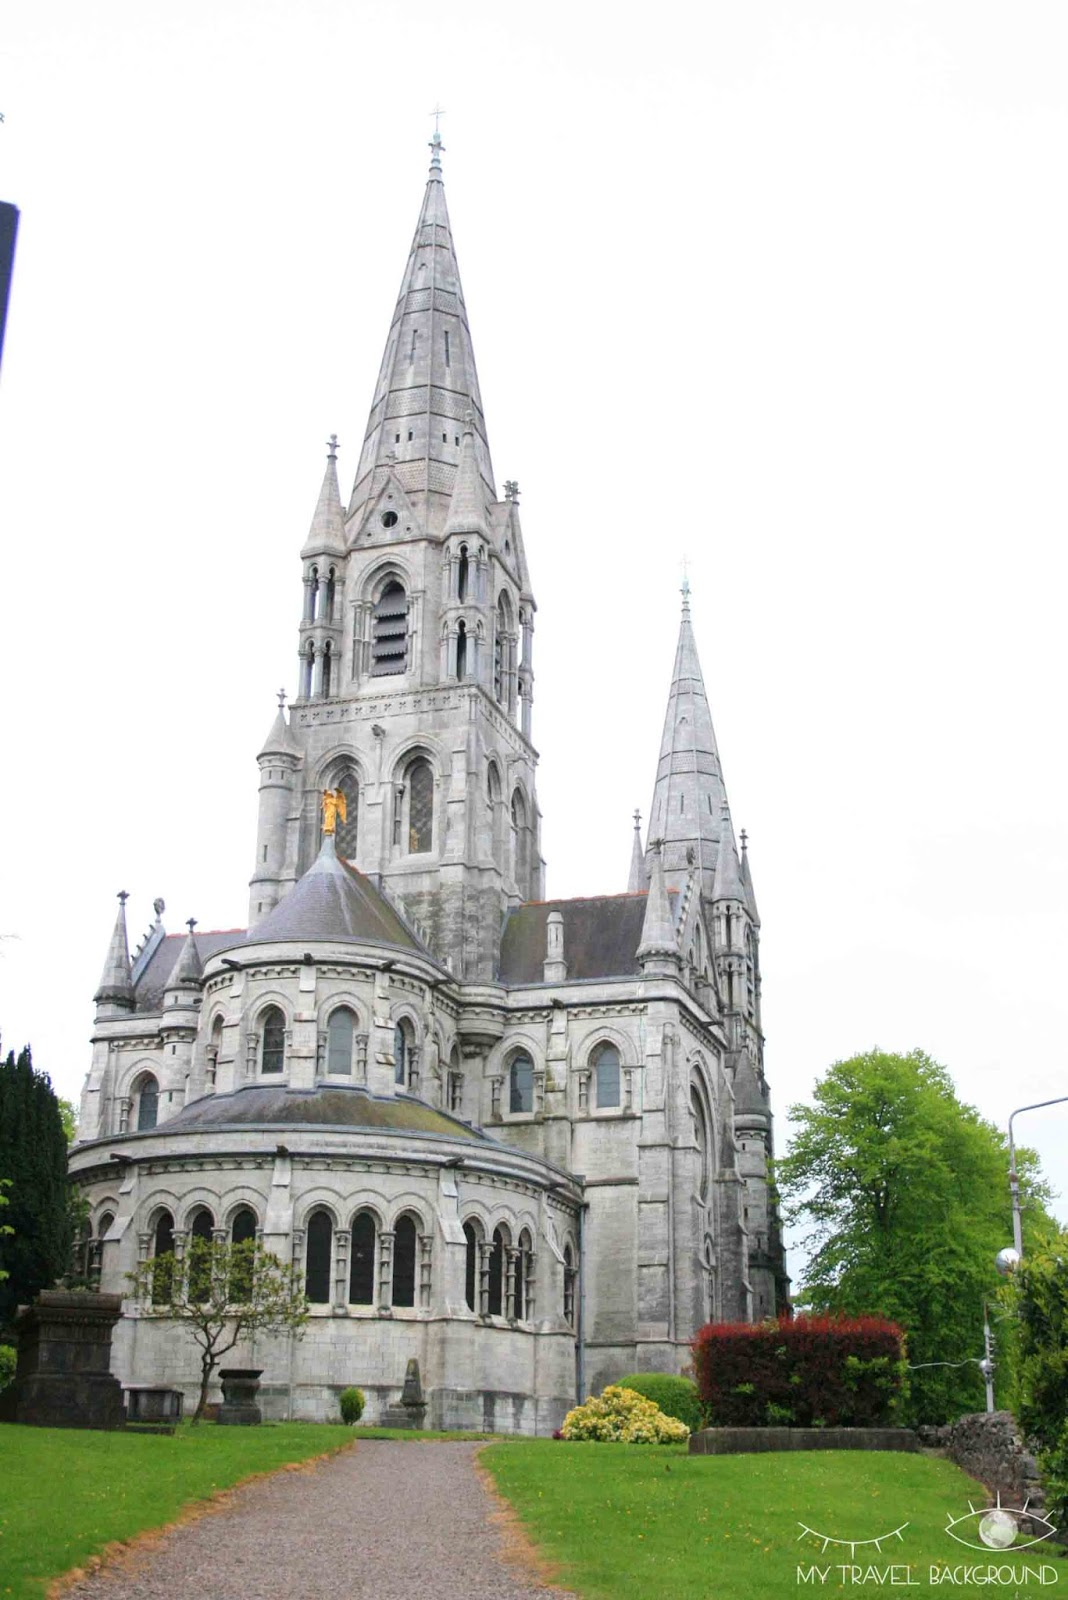 My Travel Background : 3 villes irlandaises, Cork